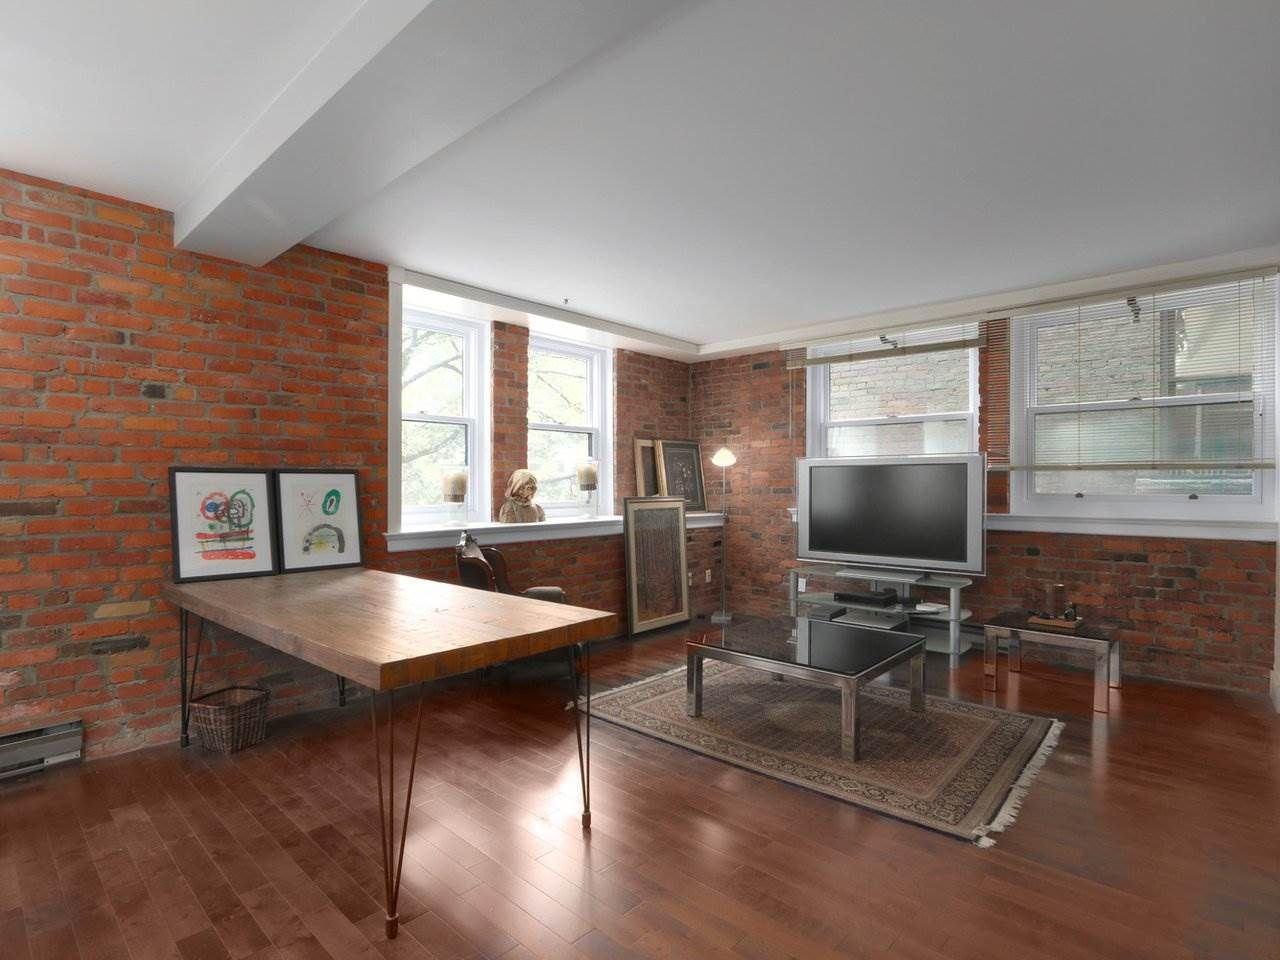 """Main Photo: 205 233 ABBOTT Street in Vancouver: Downtown VW Condo for sale in """"ABBOTT PLACE"""" (Vancouver West)  : MLS®# R2590257"""